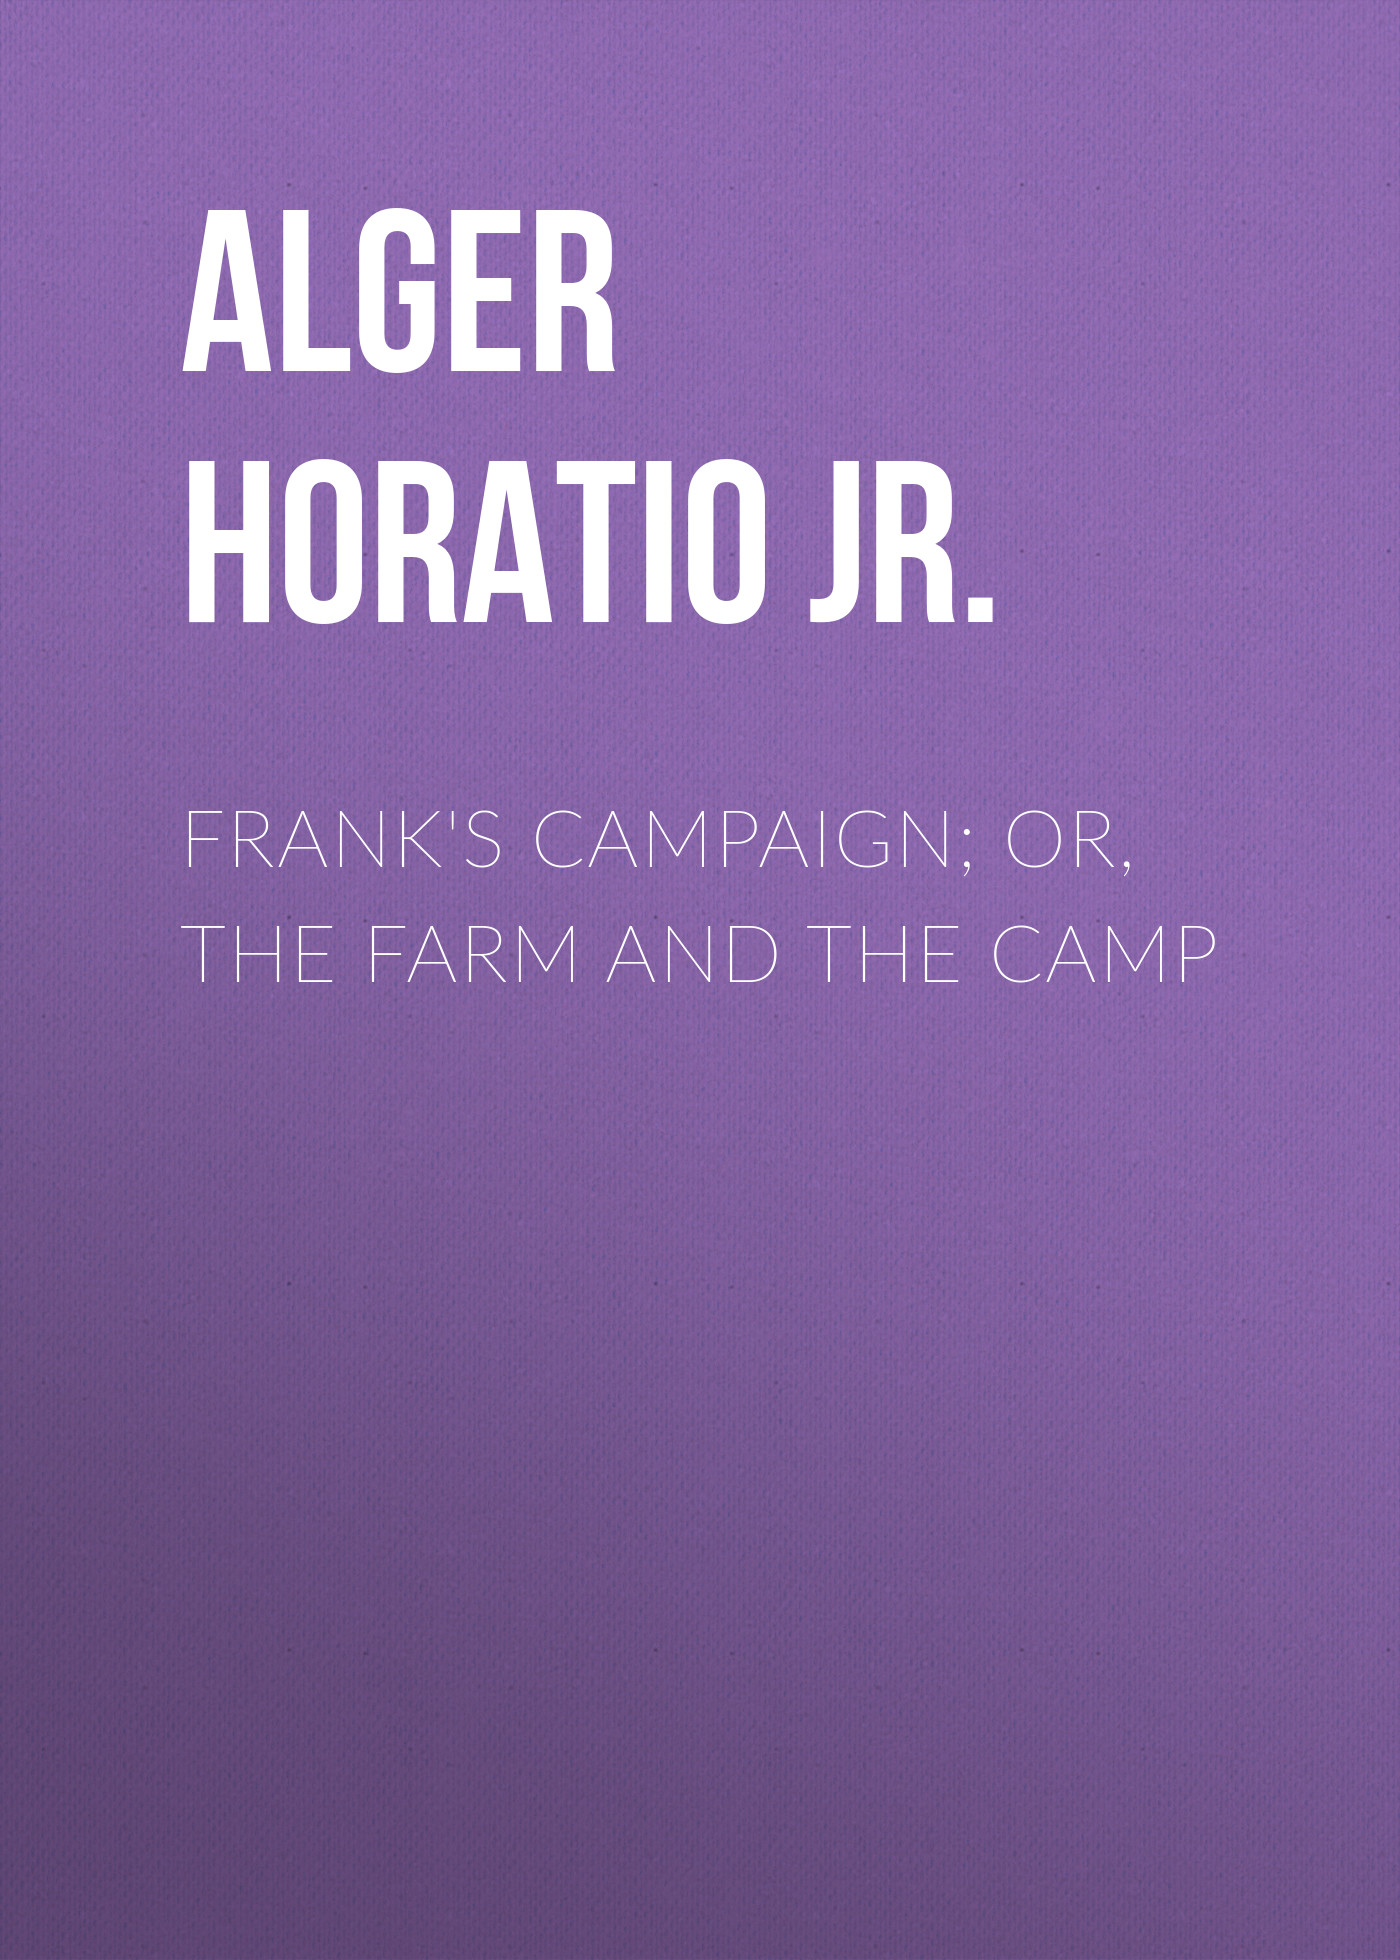 лучшая цена Alger Horatio Jr. Frank's Campaign; Or, The Farm and the Camp